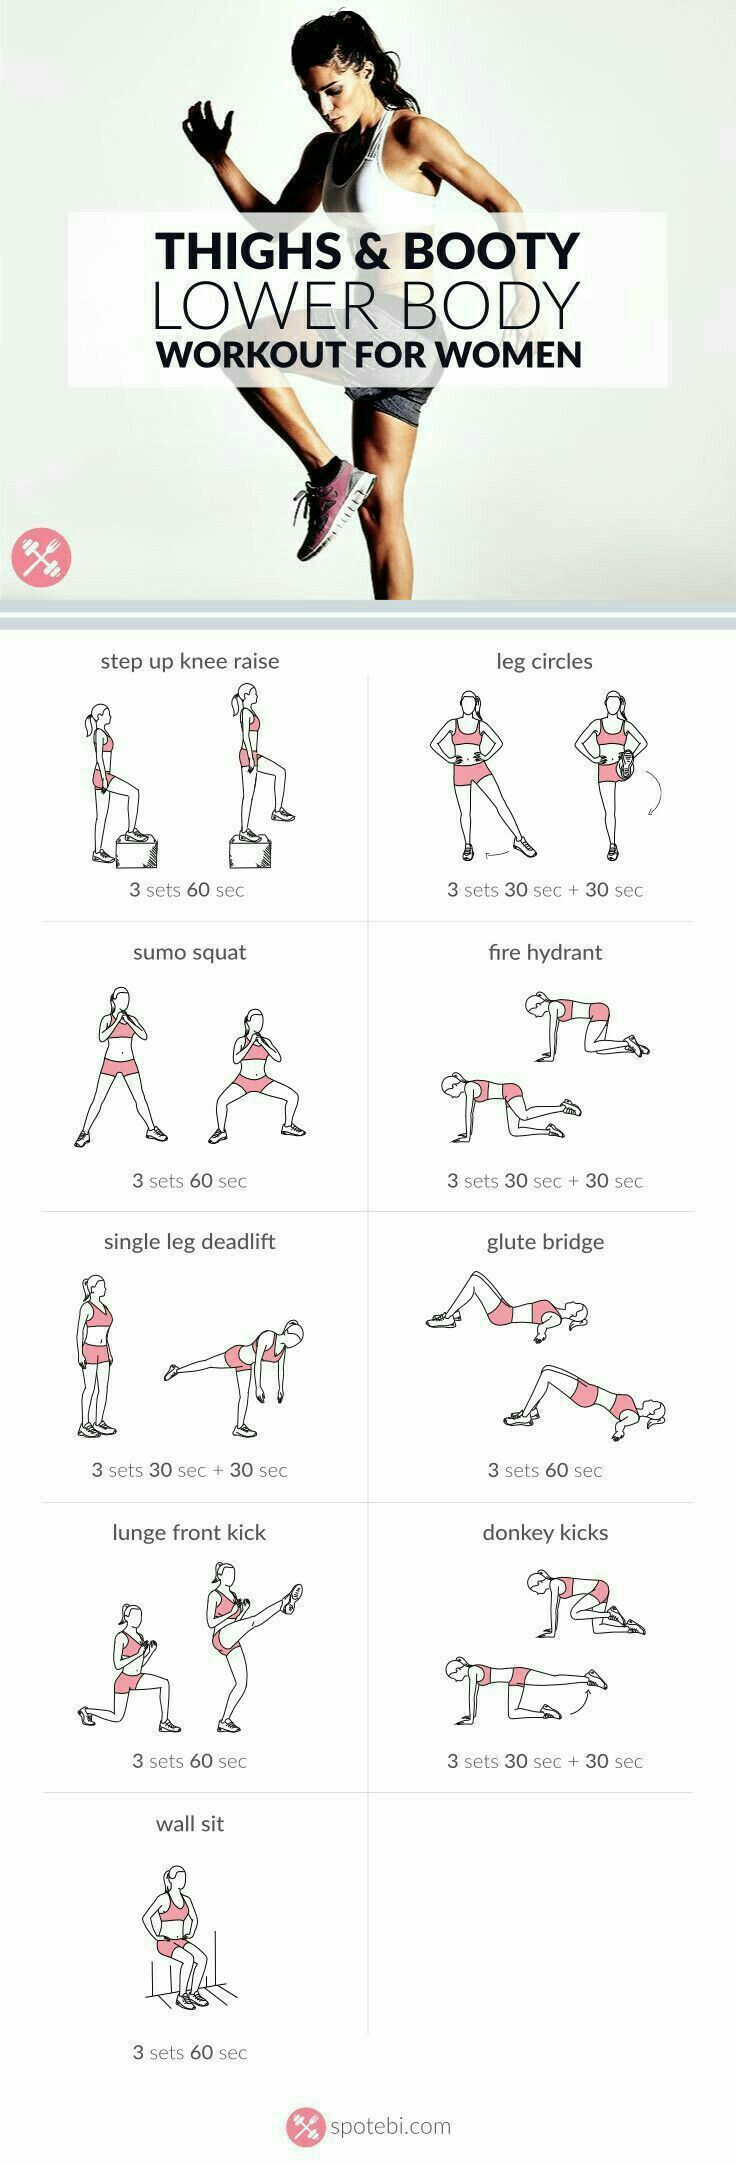 #health #exercise #vegetarian #vegan #workout #weights #wallsit #pushups #legs #quads #squats #thighs #innerthigh #lovehandles #calves #triceps #biceps #forearms #doublechin #chest #pecks #abs #abdominals #healthy #detox #weightloss #hips